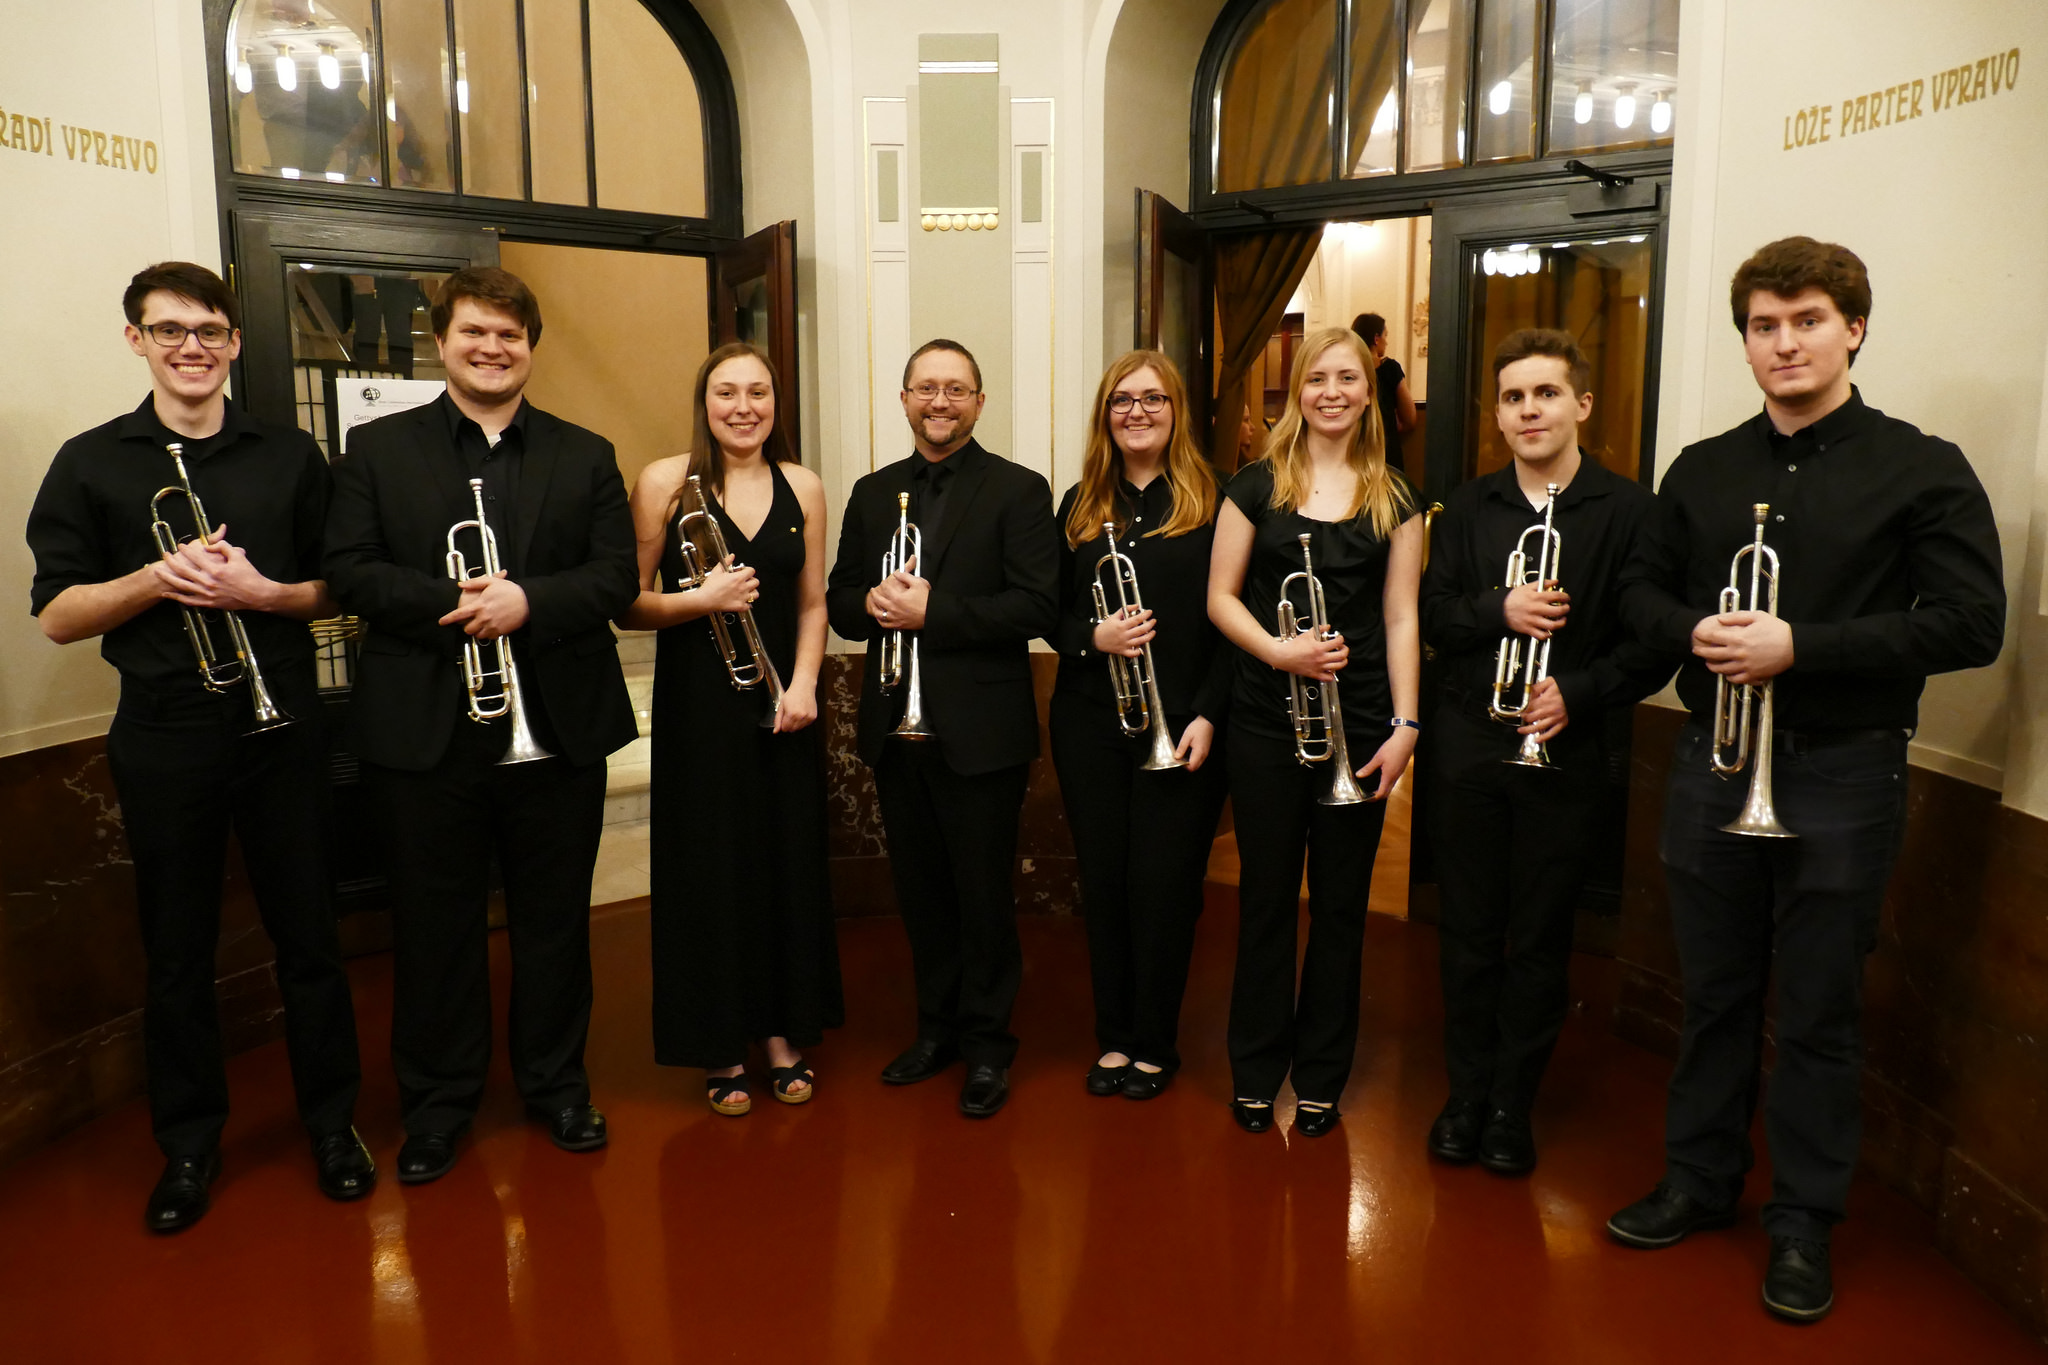 Members of the Gettysburg College Trumpet Studio, from L: Tanner Williams '21, Patrick Peters '20, Melanie Greenberg '20, Dr. Steven Marx, Bethany Frankel '20, Sofia Mouritsen '20, Andrew Mahoney '17, and Tom Crafa '20 (Photo courtesy of Sunderman Conservatory of Music)